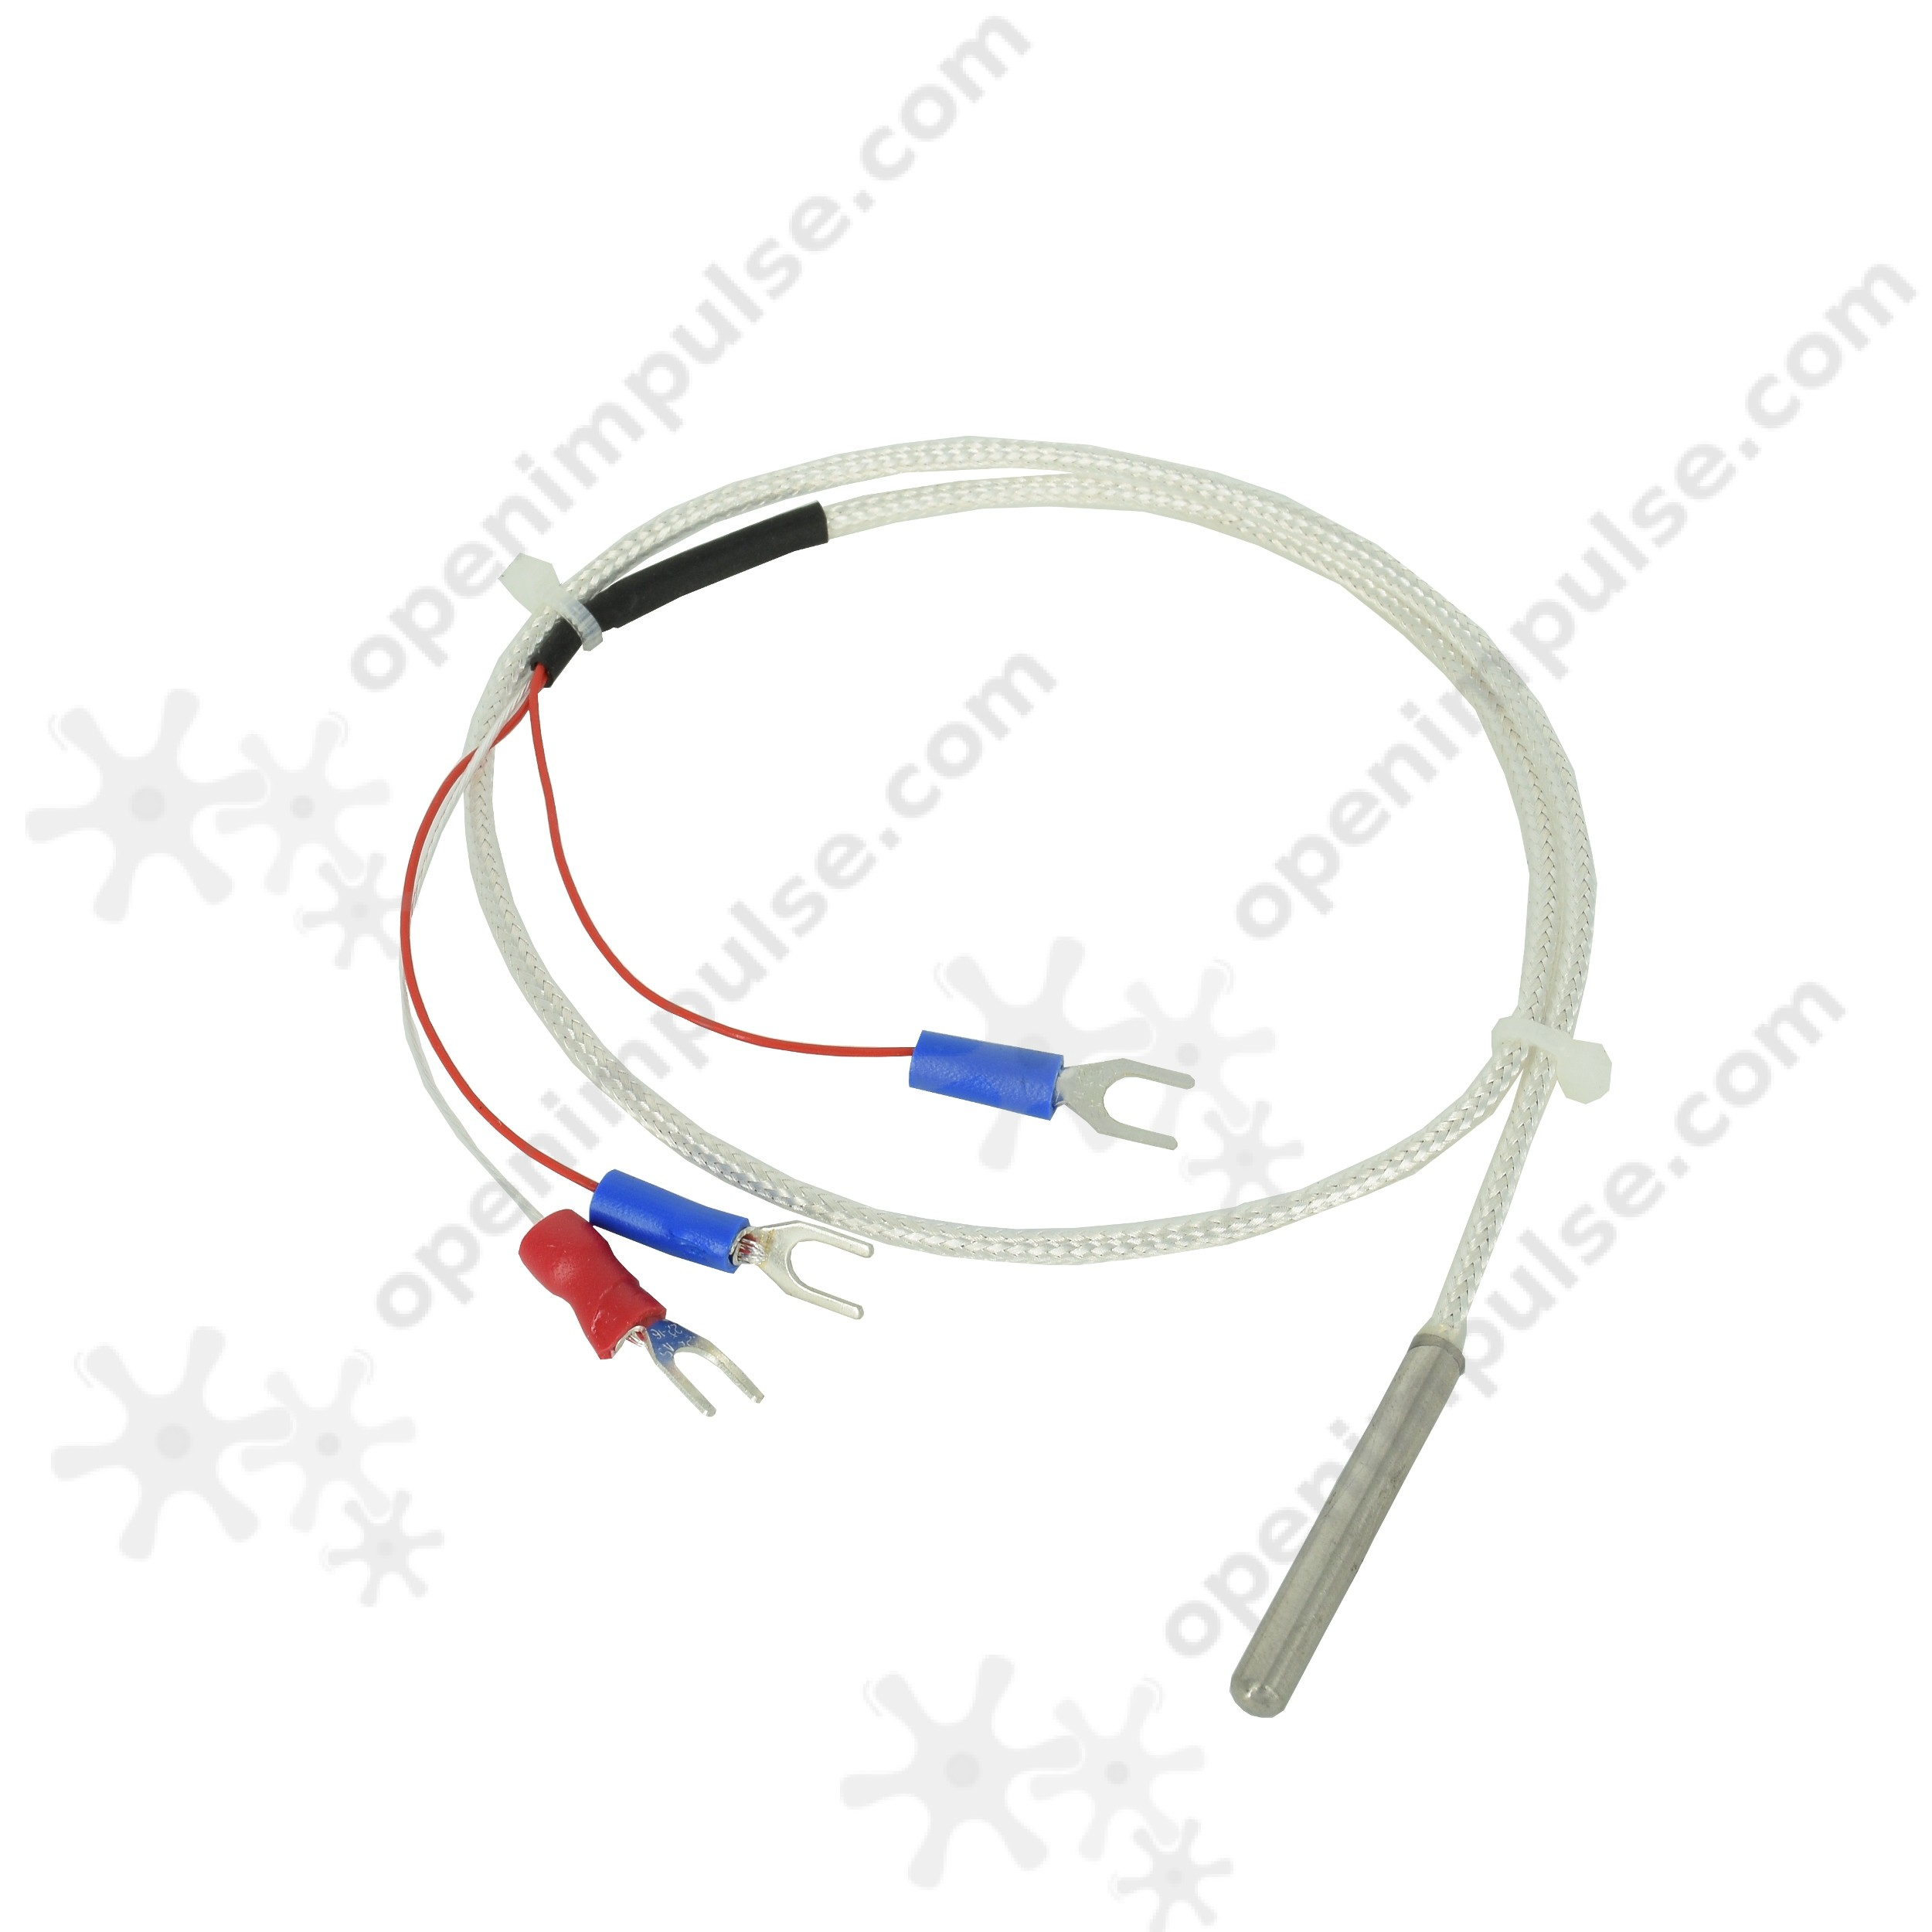 Pt100 Temperature Sensor With 0 5 M Cable 0 1 Accuracy